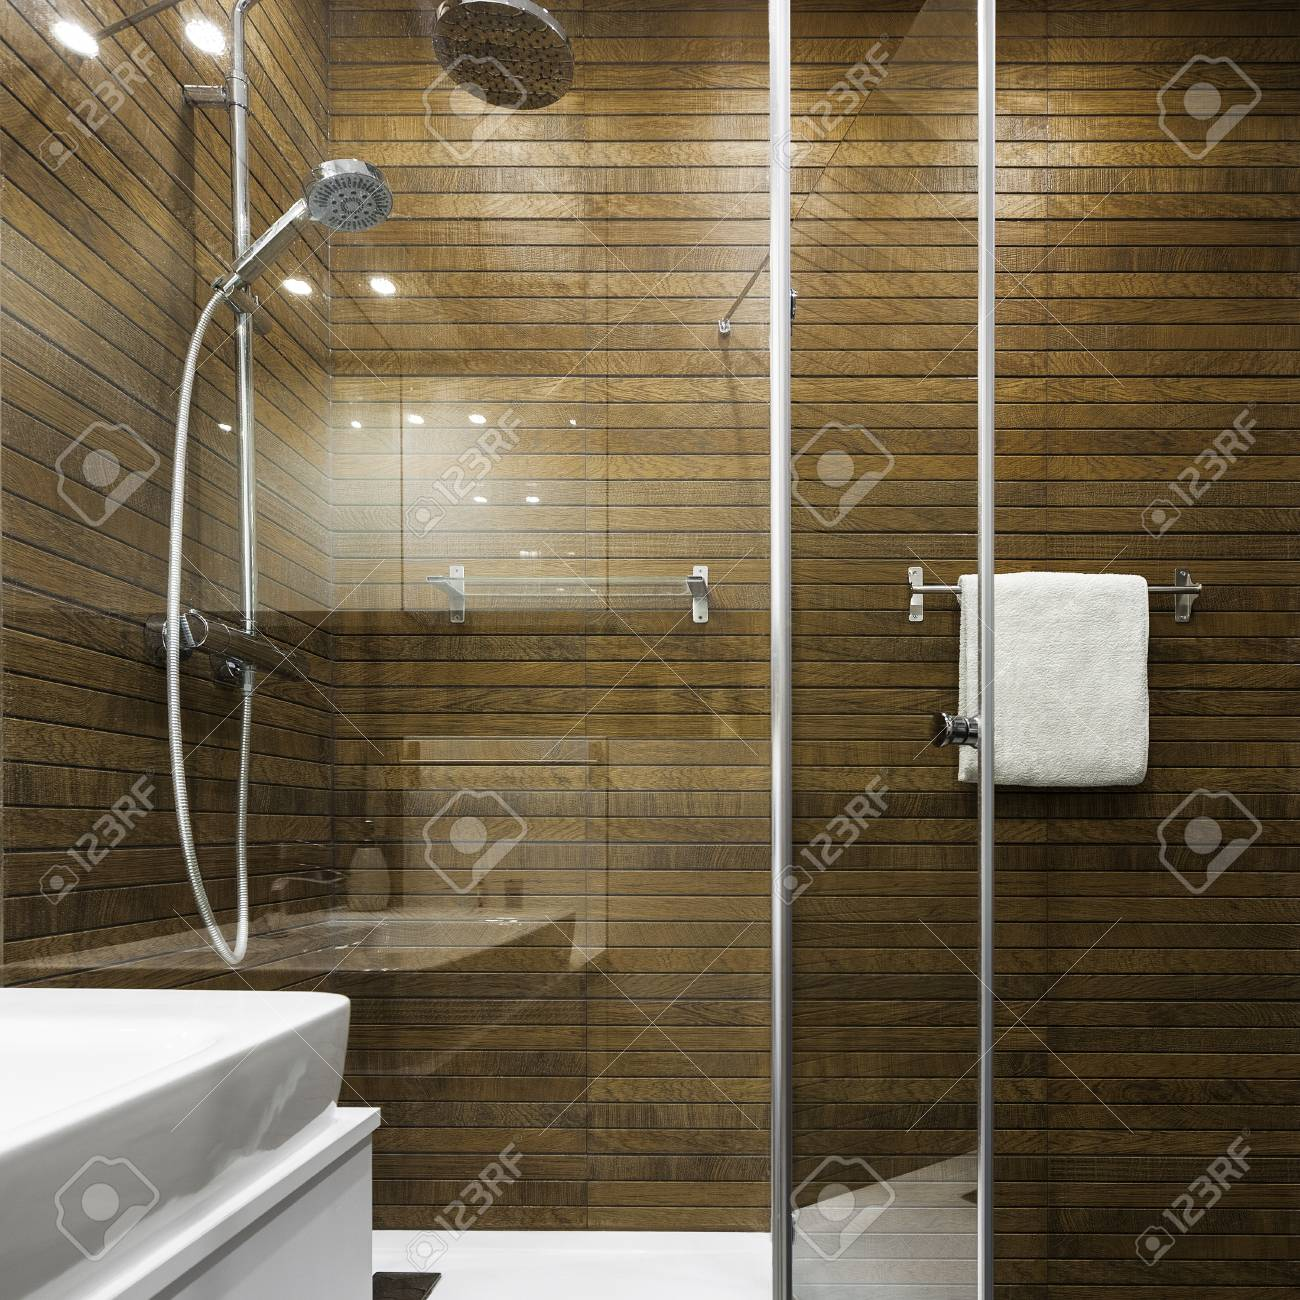 Scandinavian Design In Bathroom